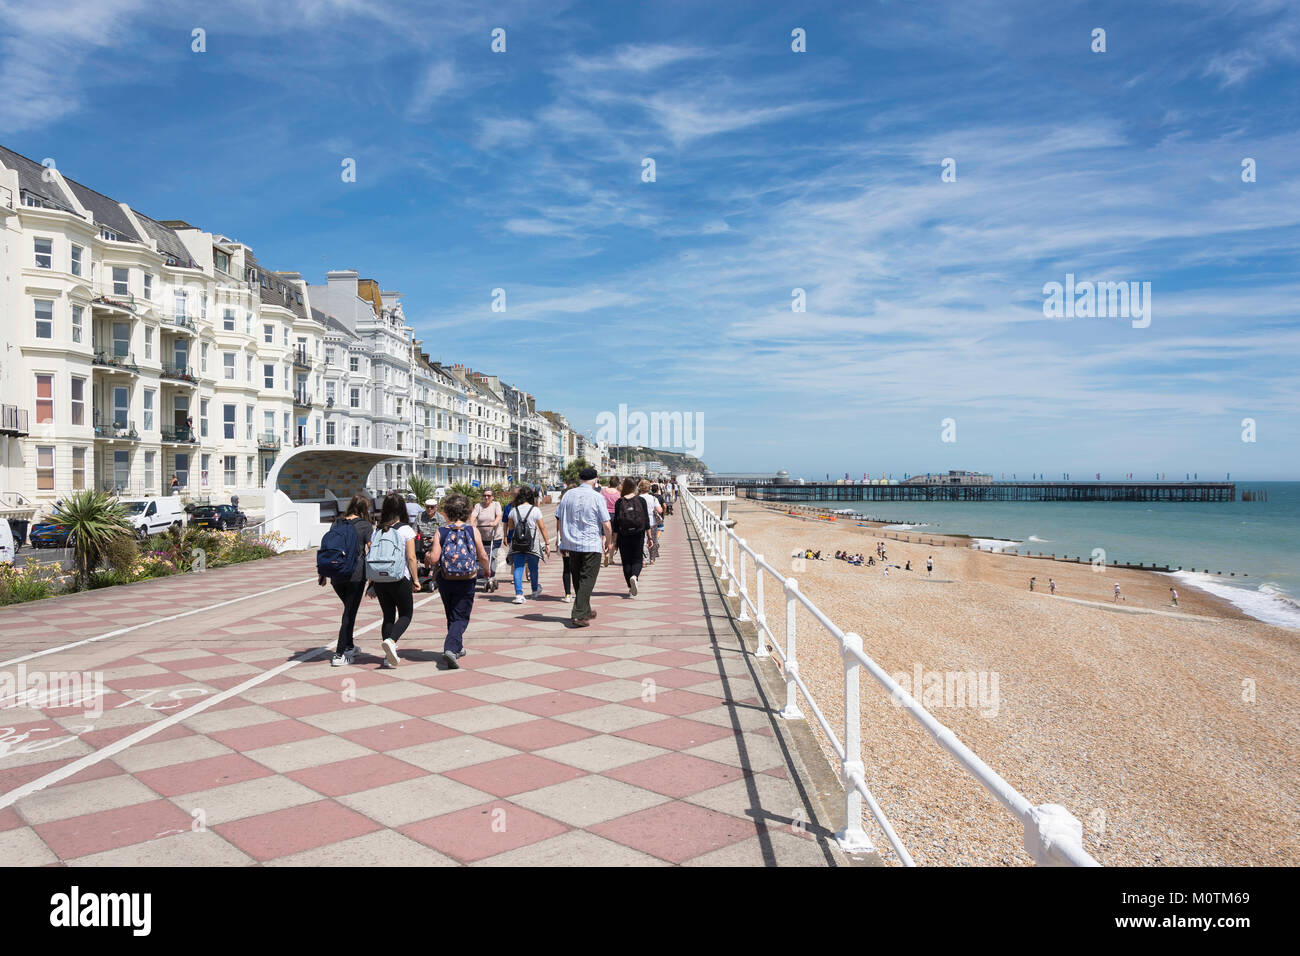 Beach promenade and pier, Hastings, East Sussex, England, United Kingdom - Stock Image